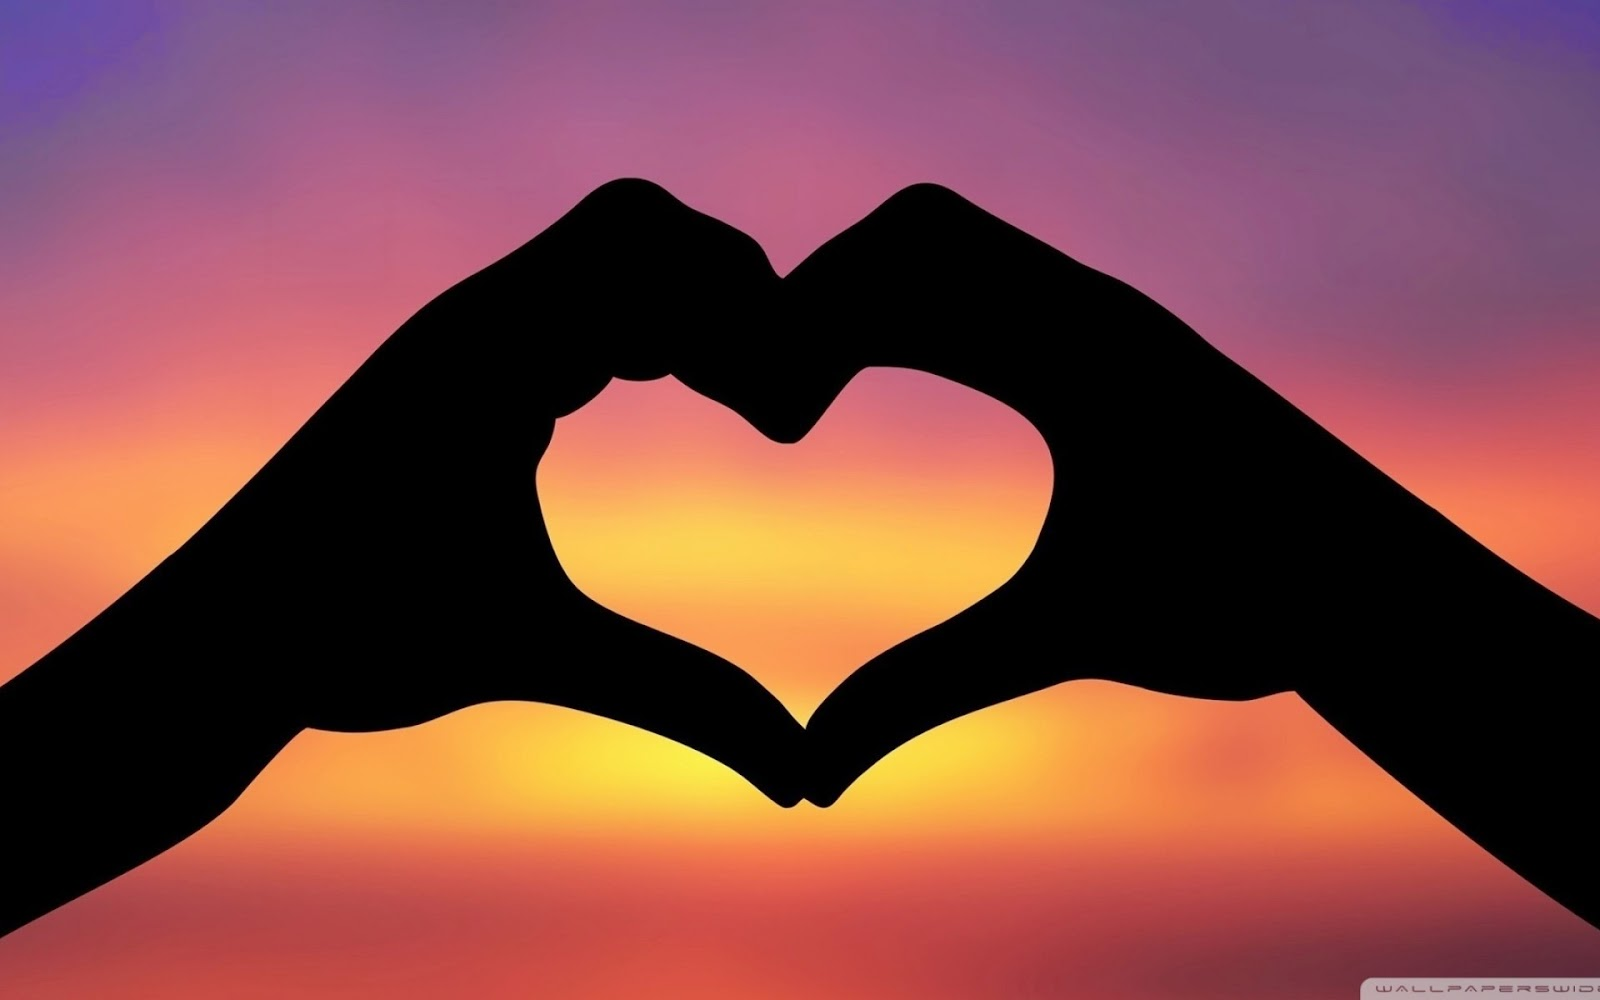 Love Wallpapers Sunset Hands Love Woman: Hand Shaped Love Wallpaper In Sunset